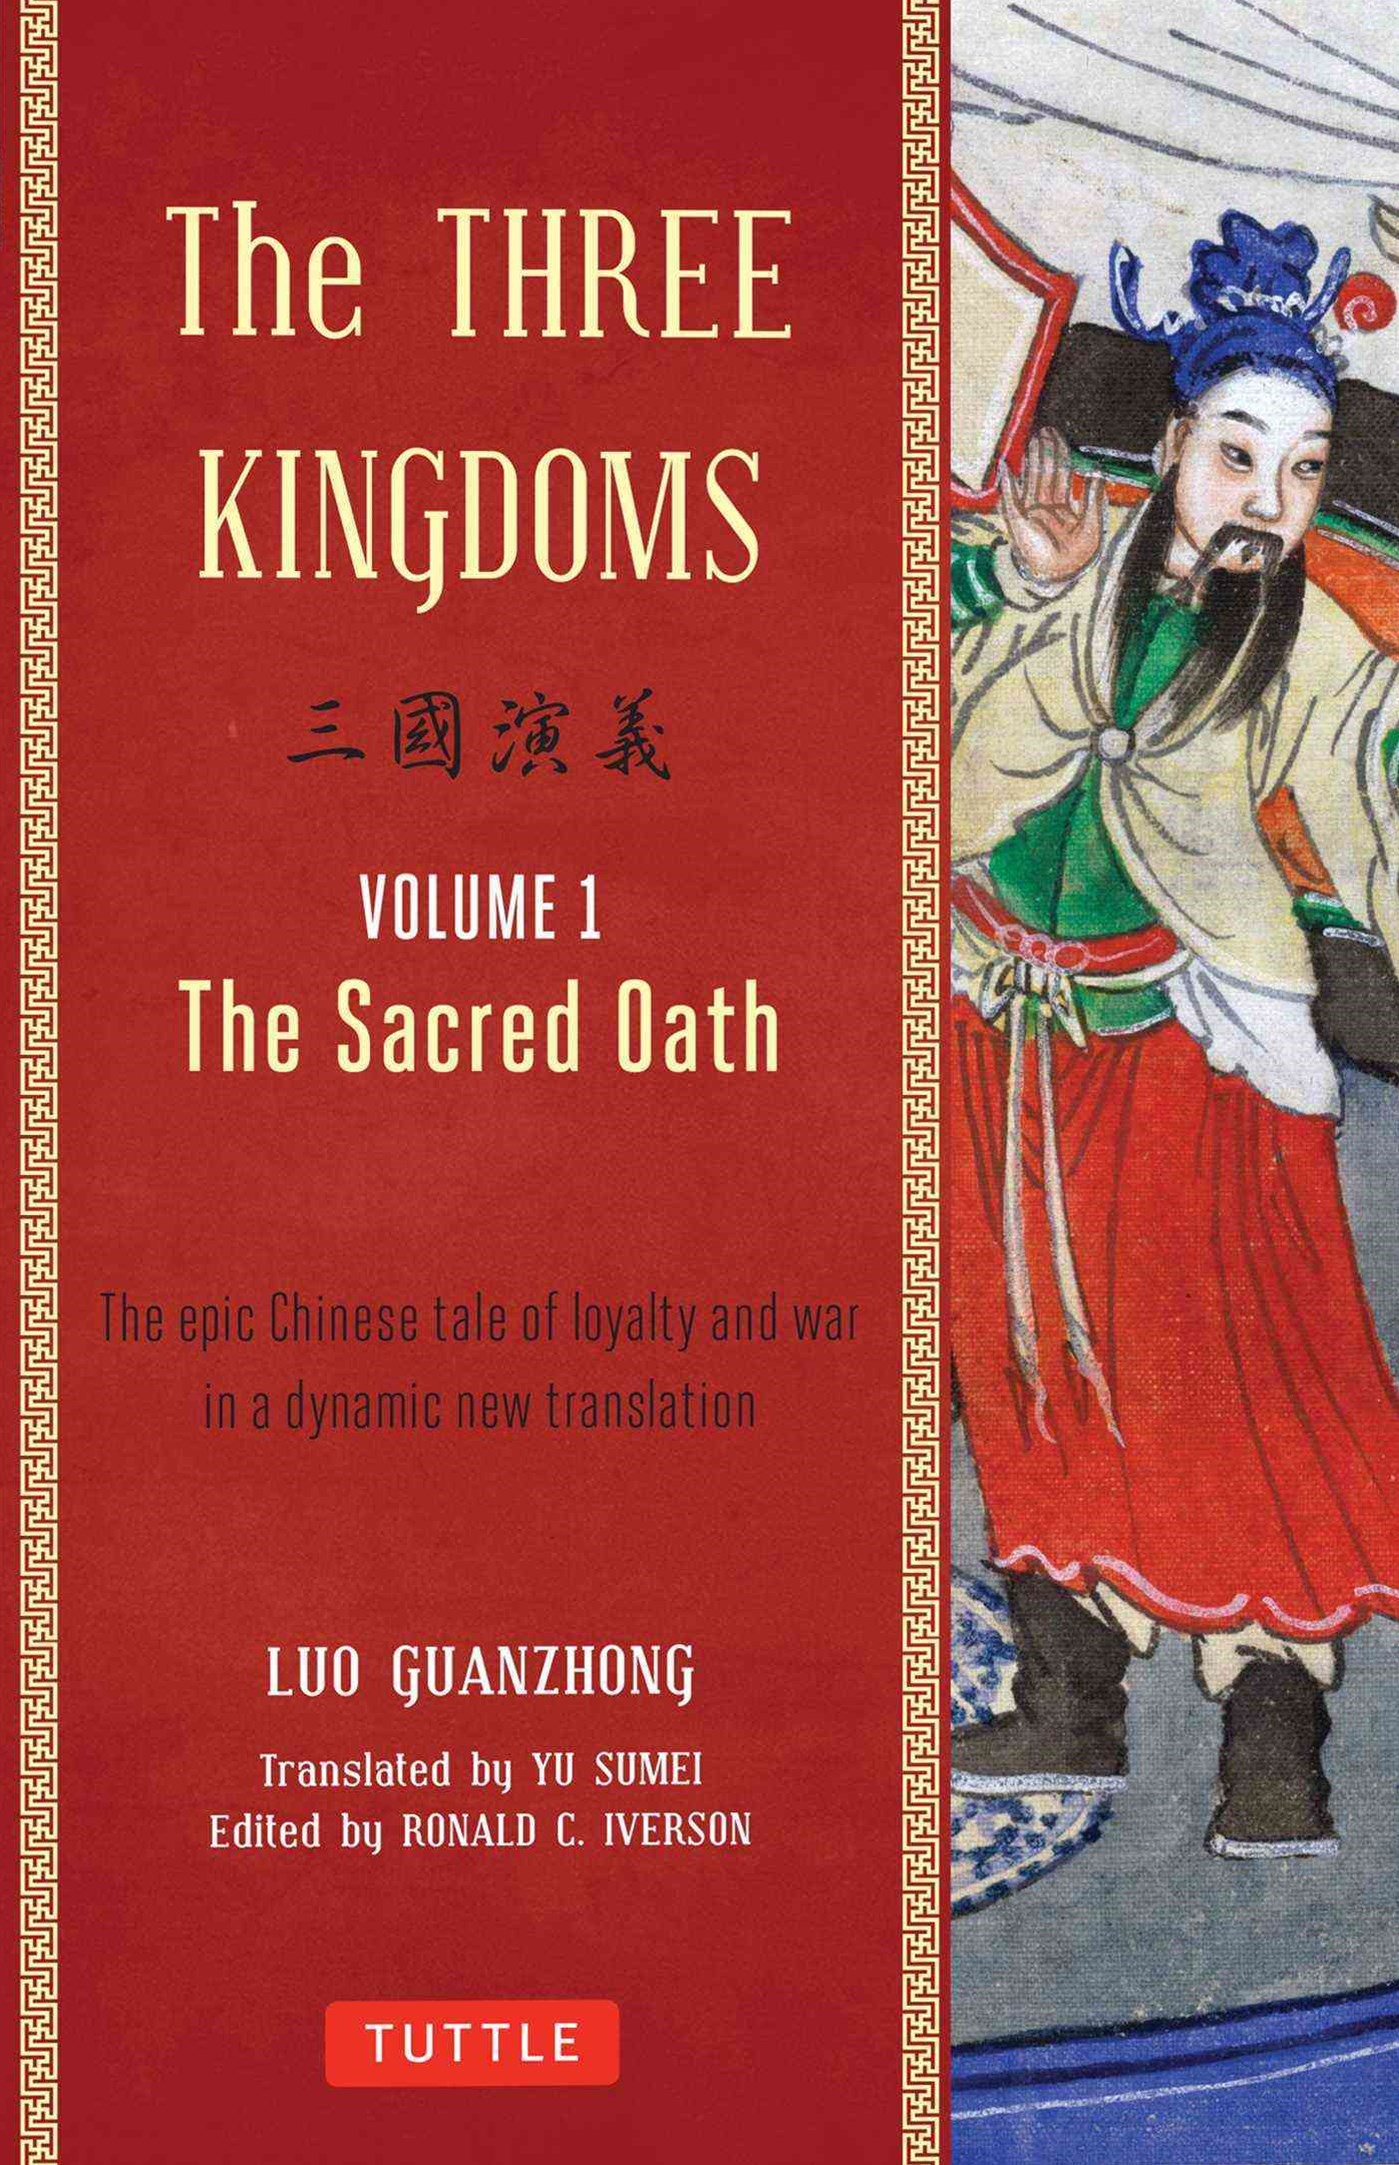 The Three Kingdoms Vol. 1